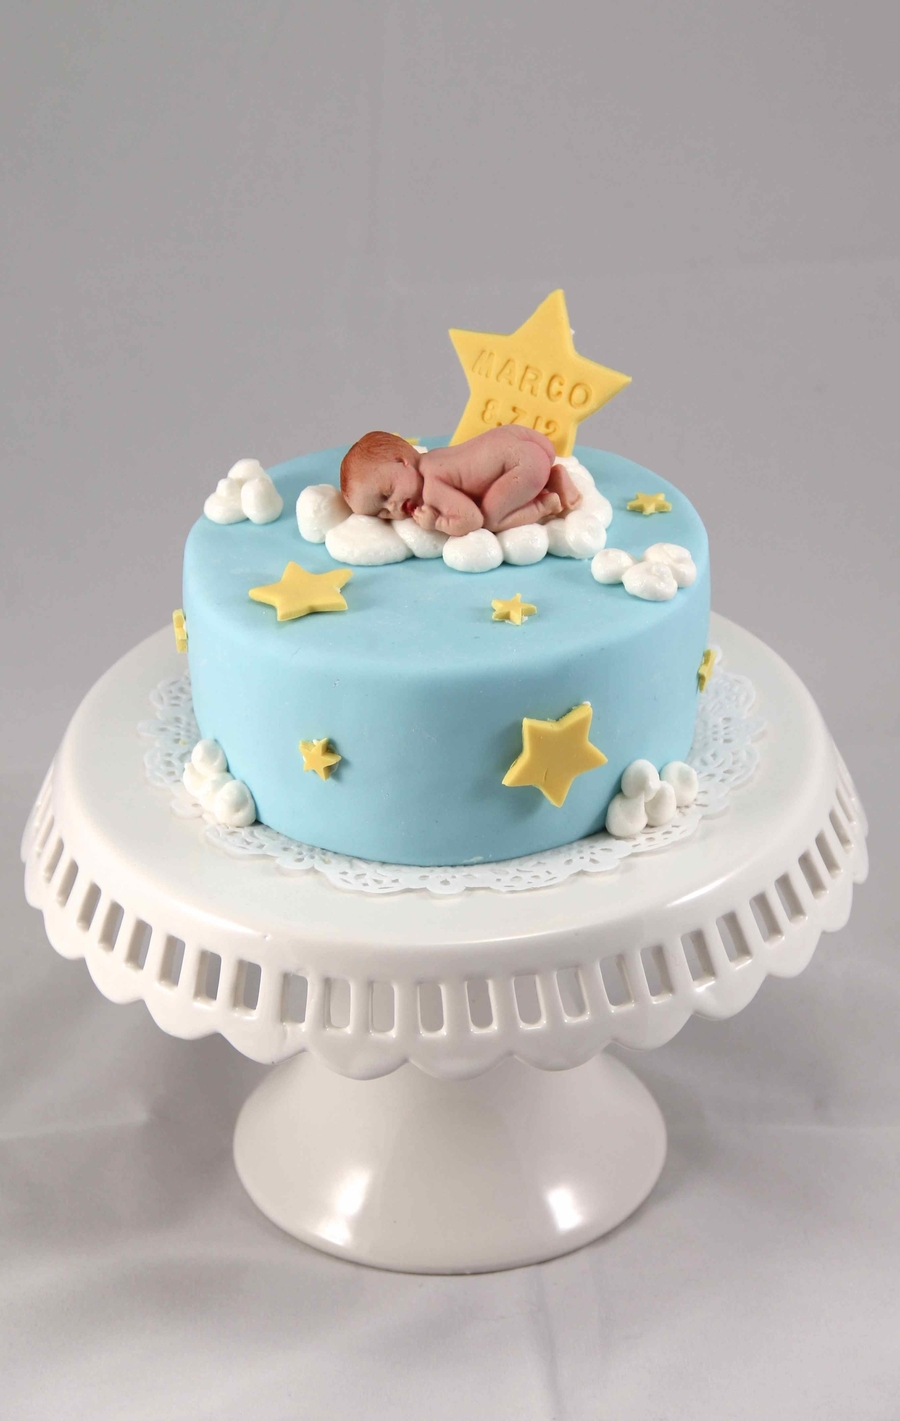 Baby On Cloud For One Month Celebration Cakecentral Com